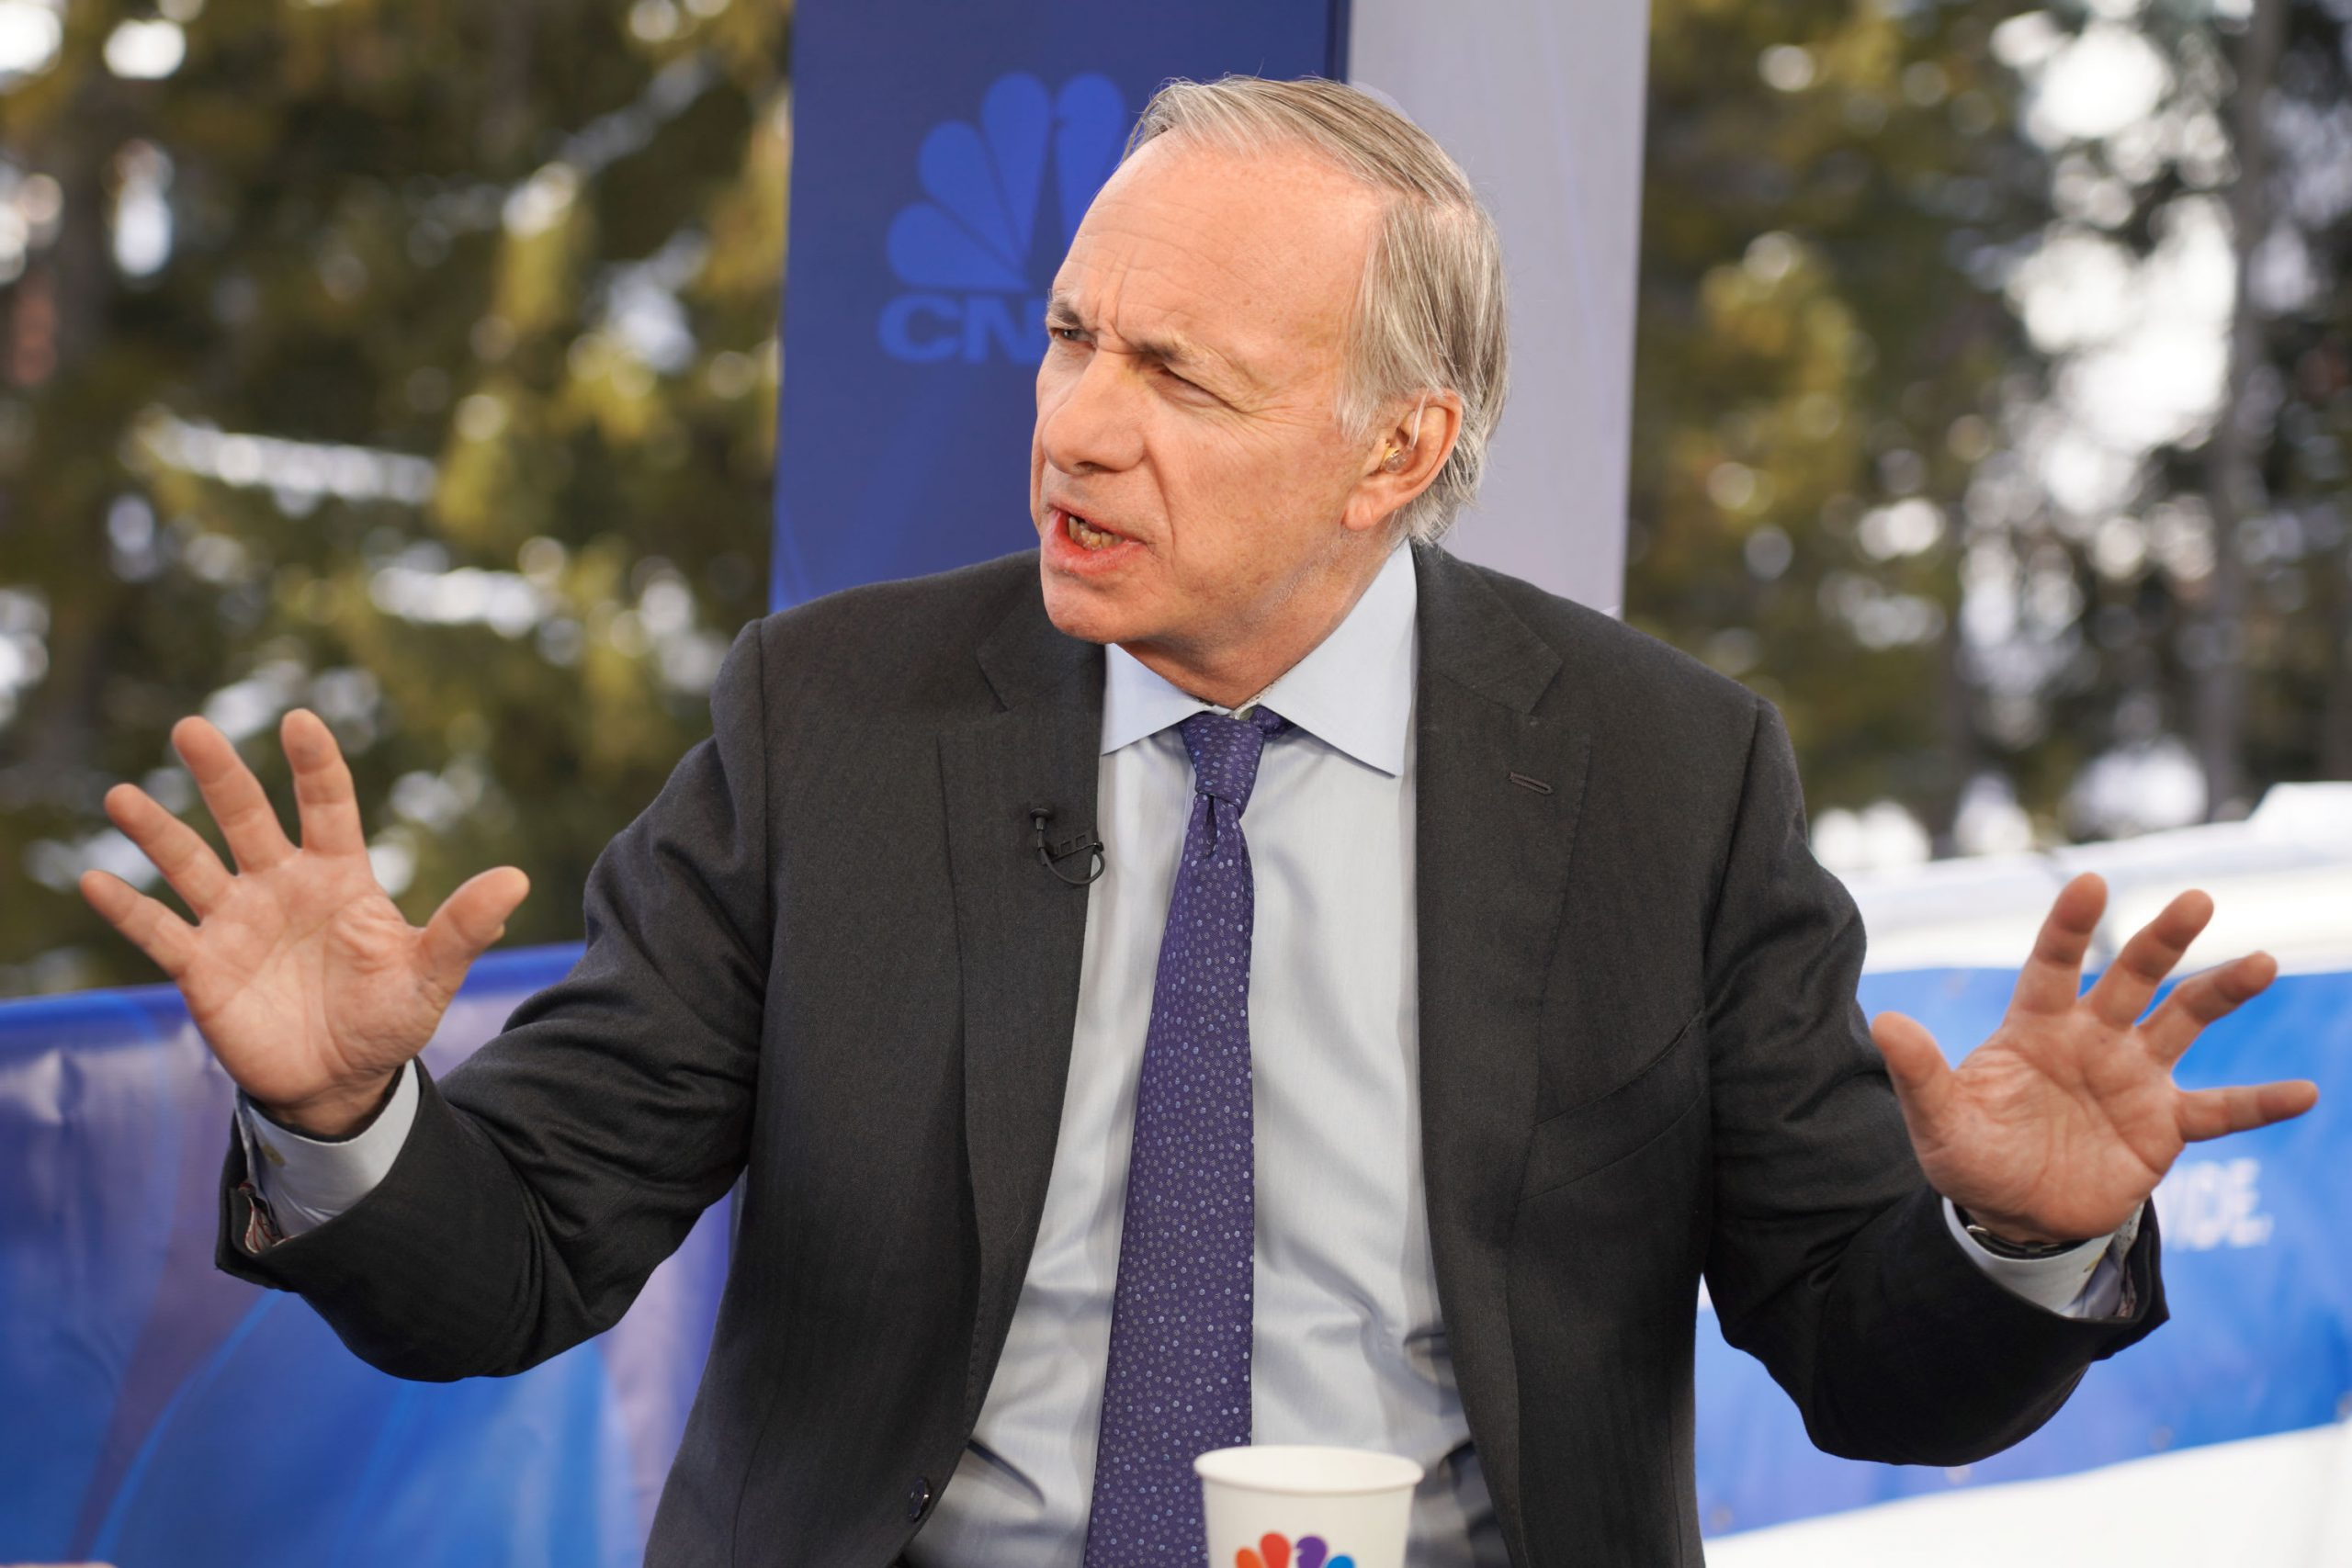 Here's the investment strategy Bridgewater's Ray Dalio is using to deal with coronavirus